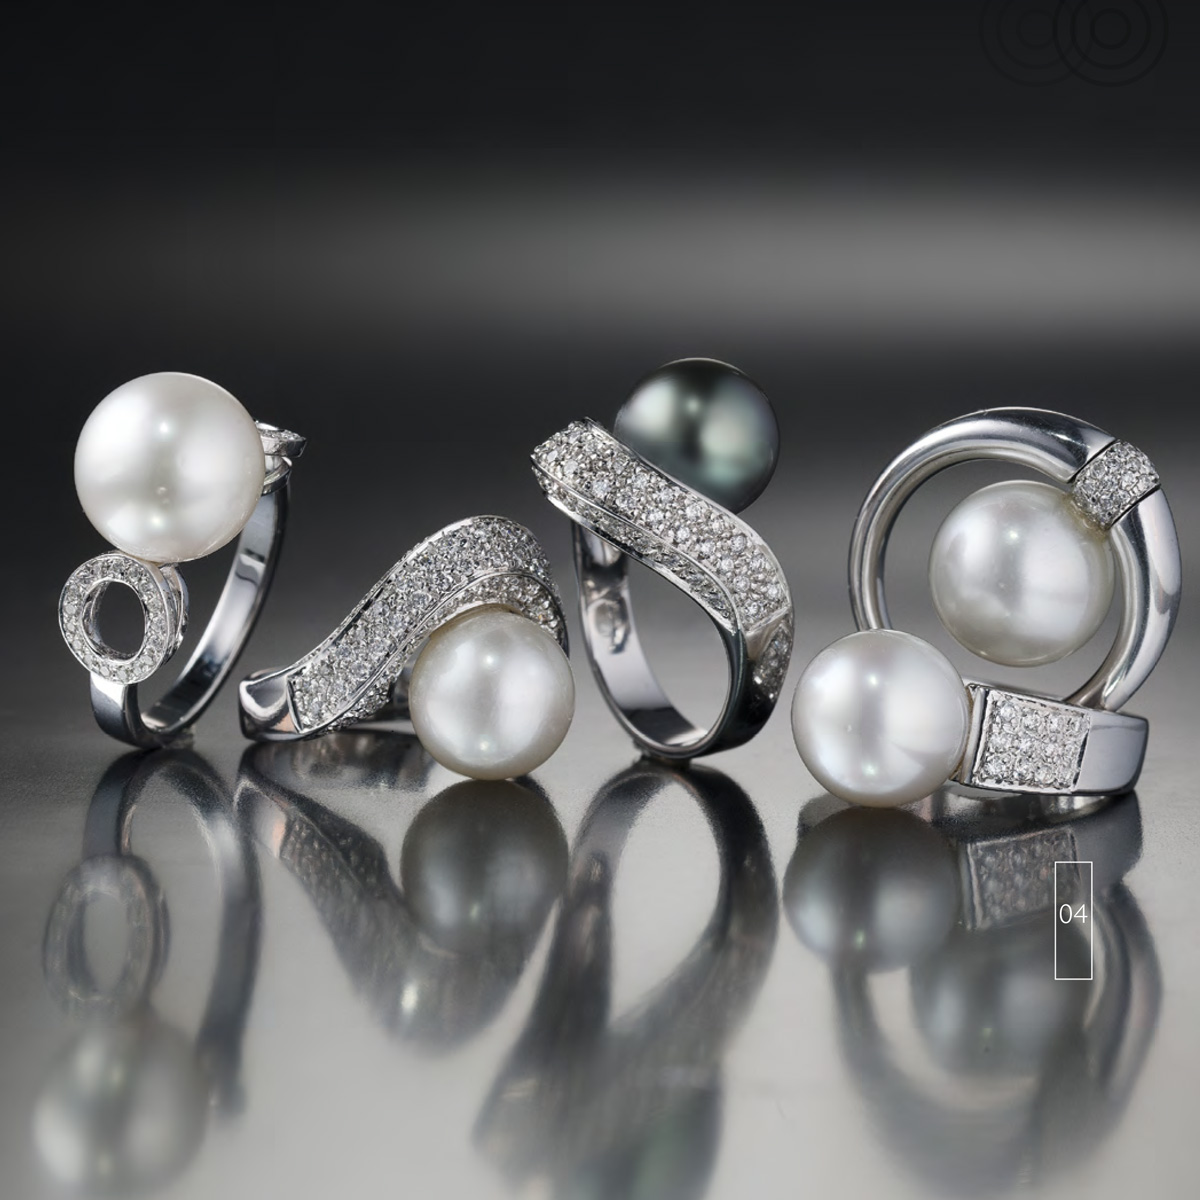 Perle e Diamanti  - Pearls with Diamonds